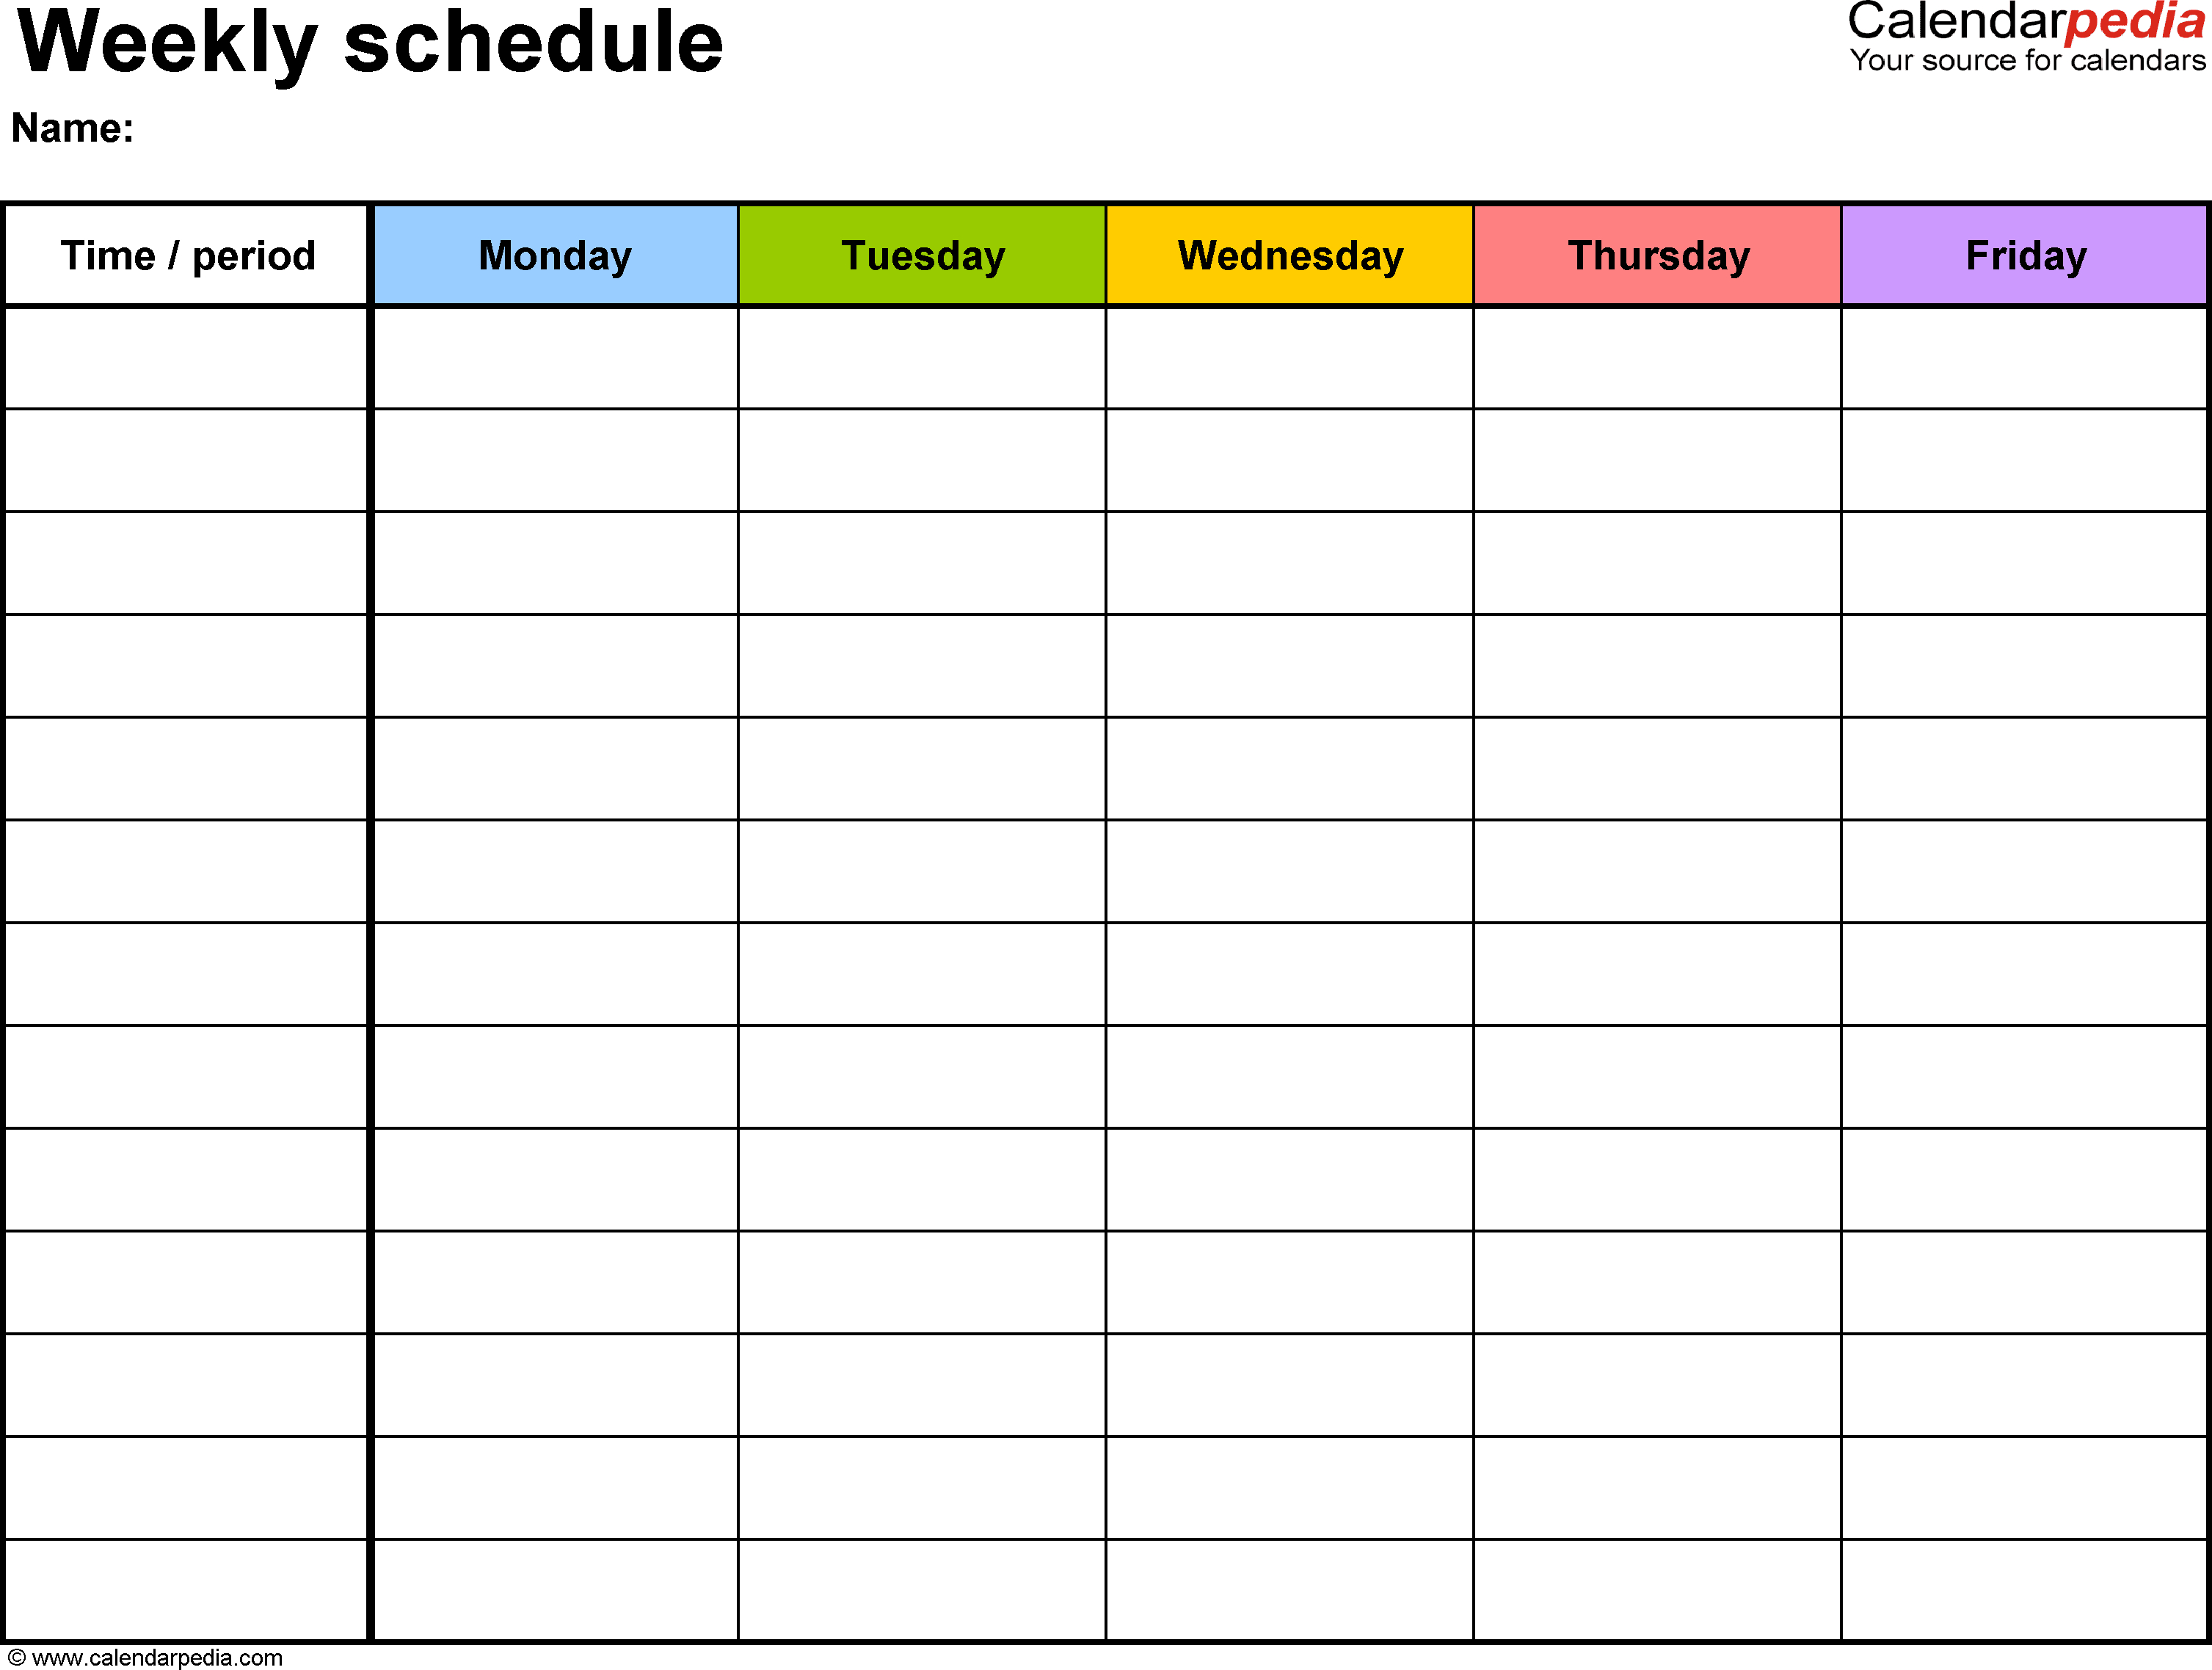 Blank Weekly Calendar With Times - Infer.ifreezer.co in Blank Schedule Template With Time Slots